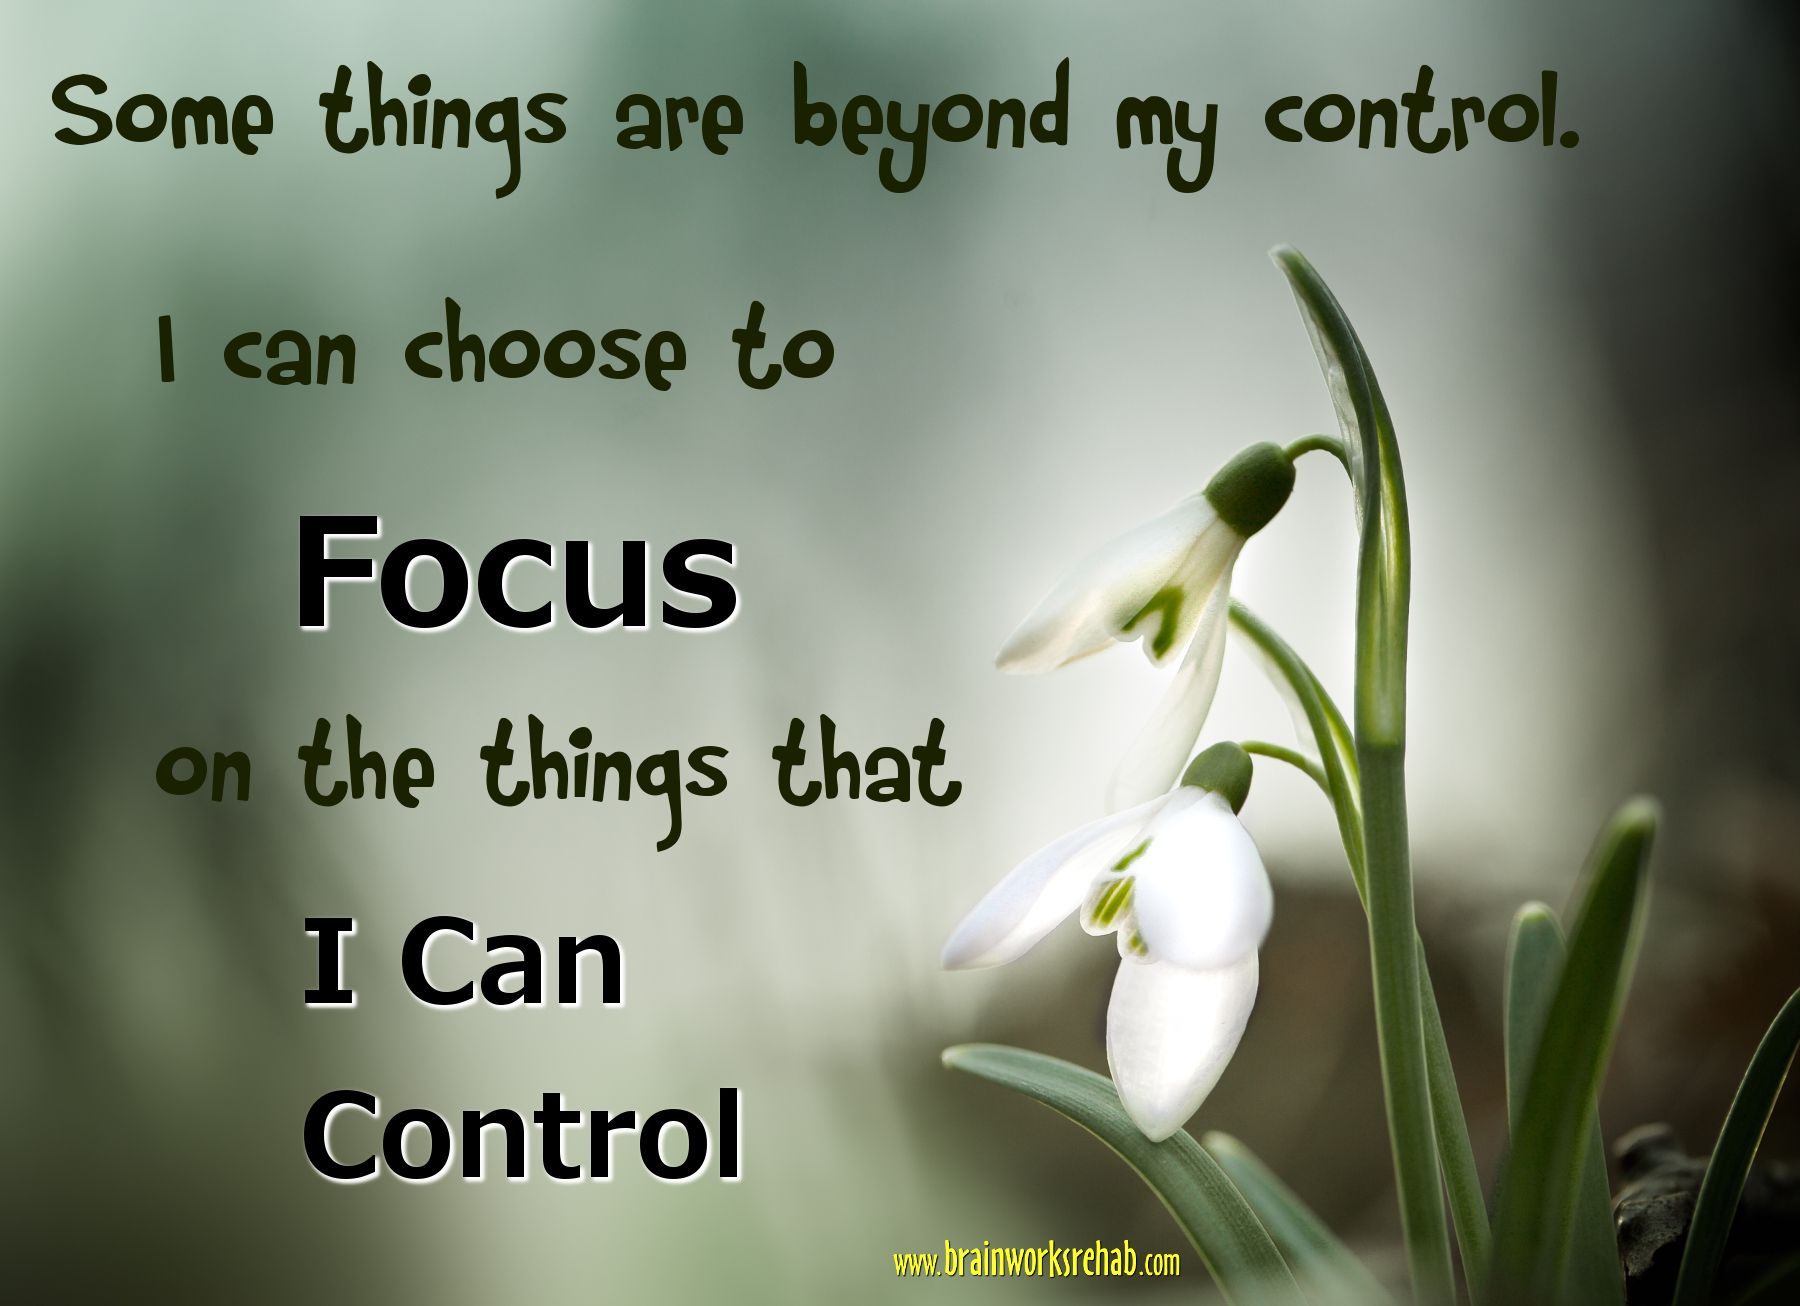 Some Things Are Beyond My Control. I Can Choose To Focus